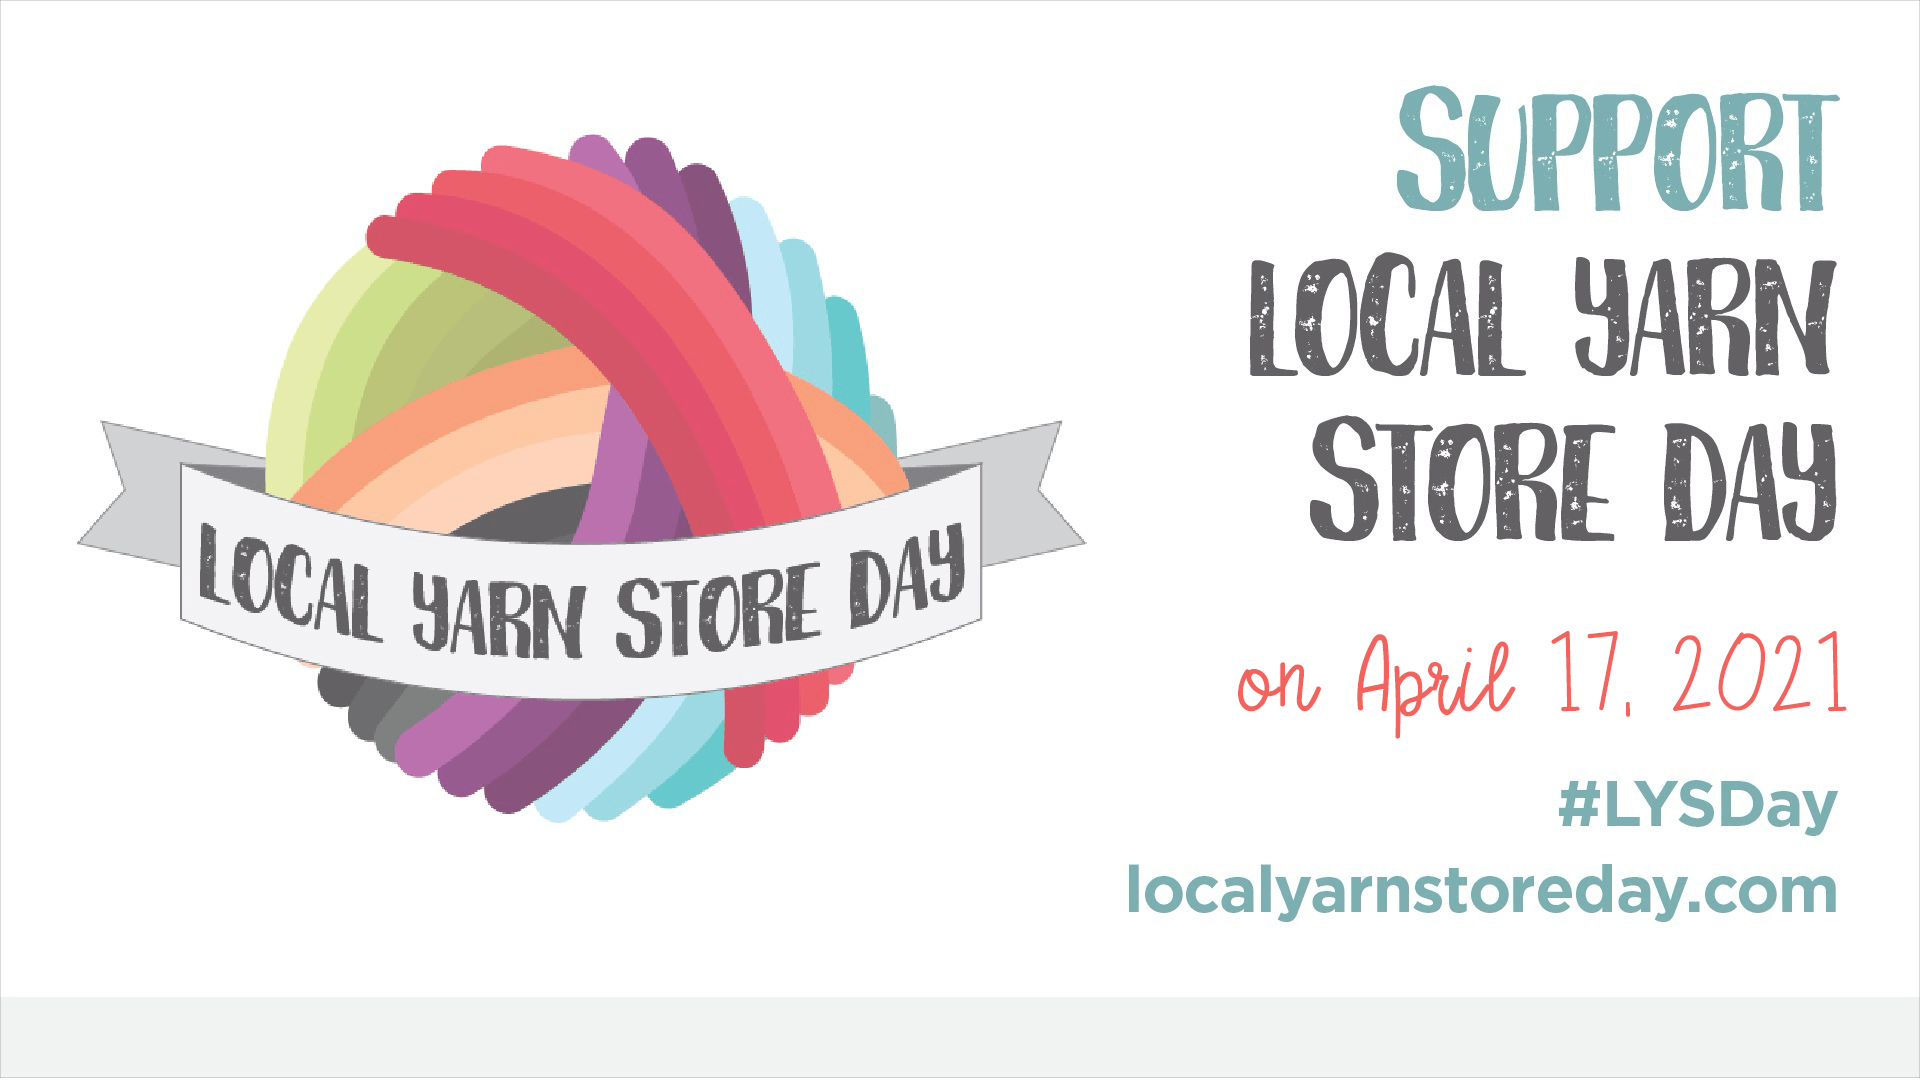 Image description: Local Yarn Store Day promotion